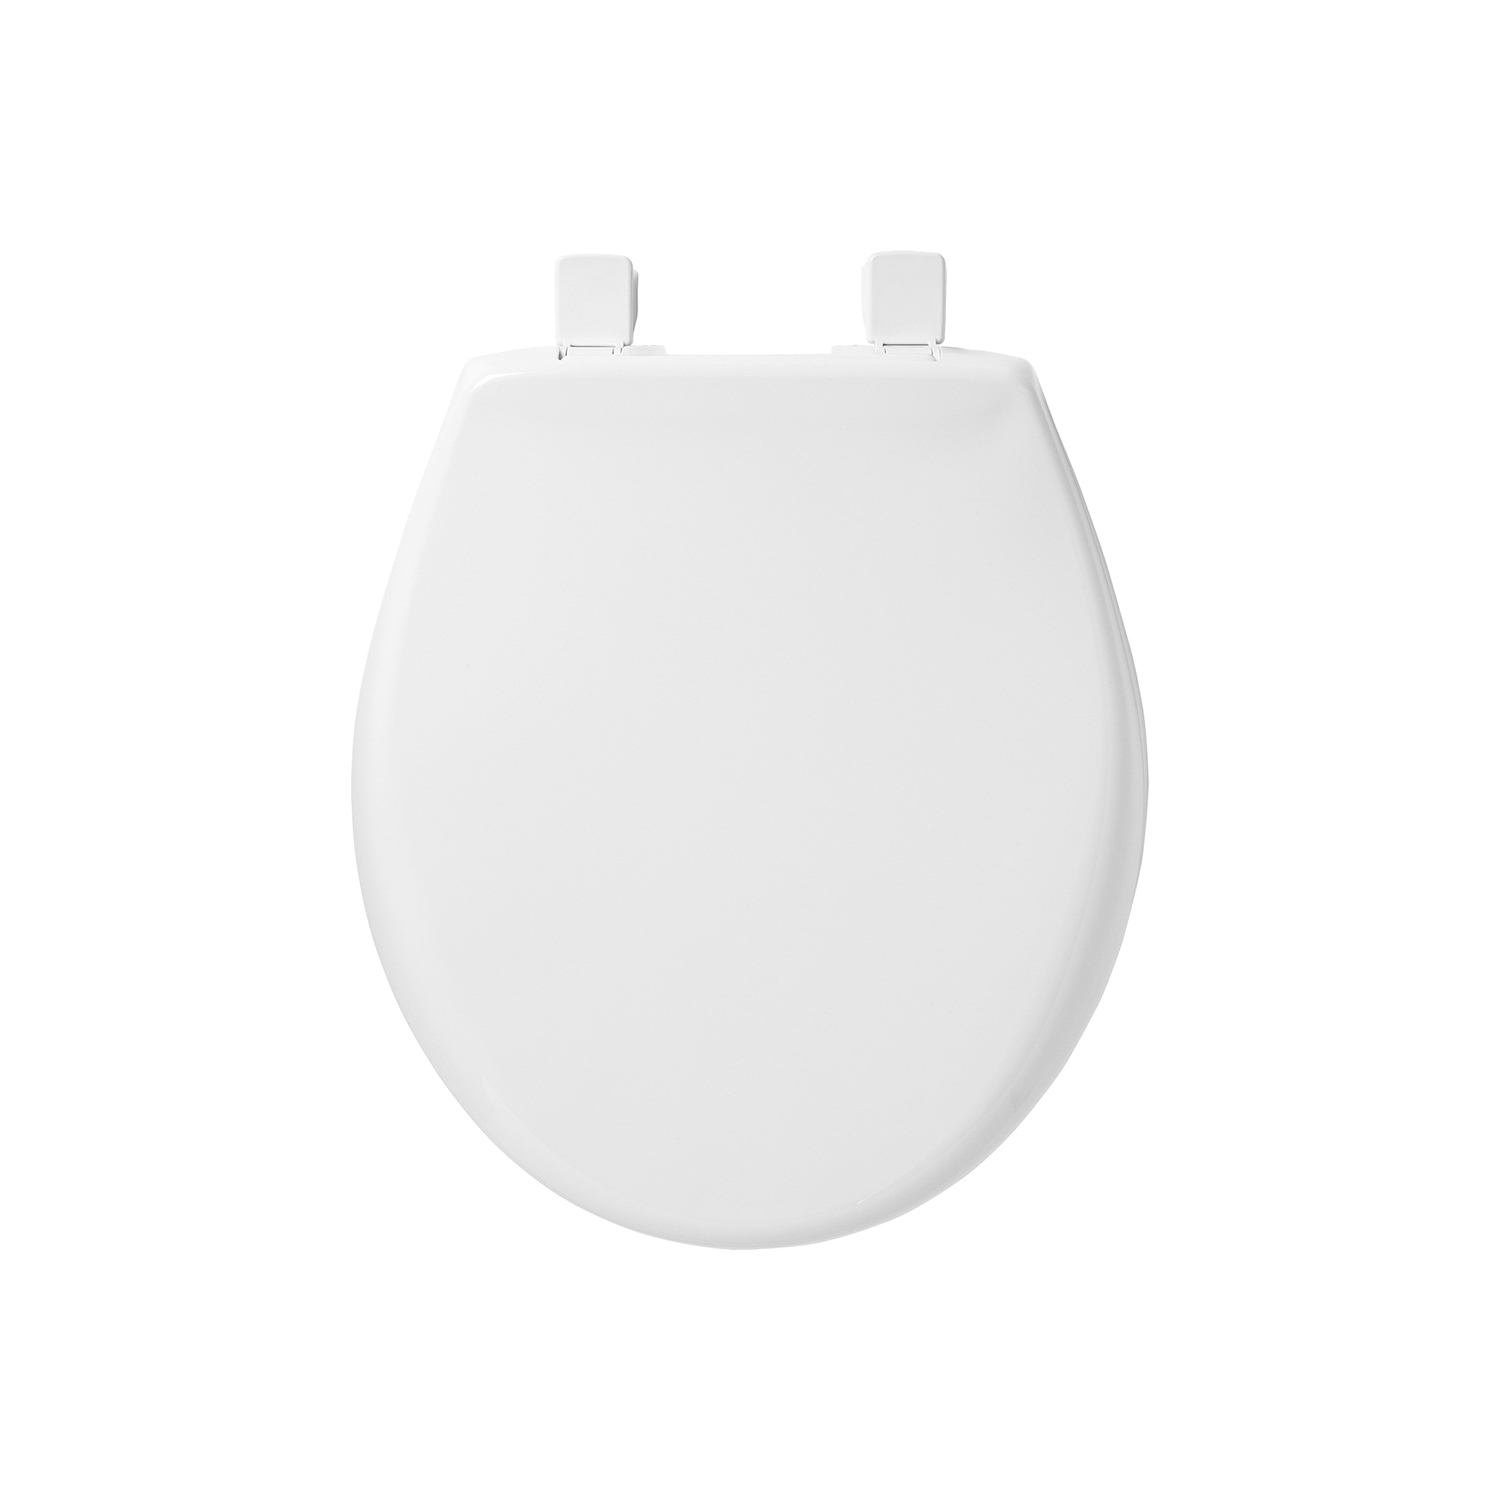 Bemis® AFFINITY™ 200E3 Toilet Seat With Cover, Round Bowl, Closed Front, Plastic, White, Domestic